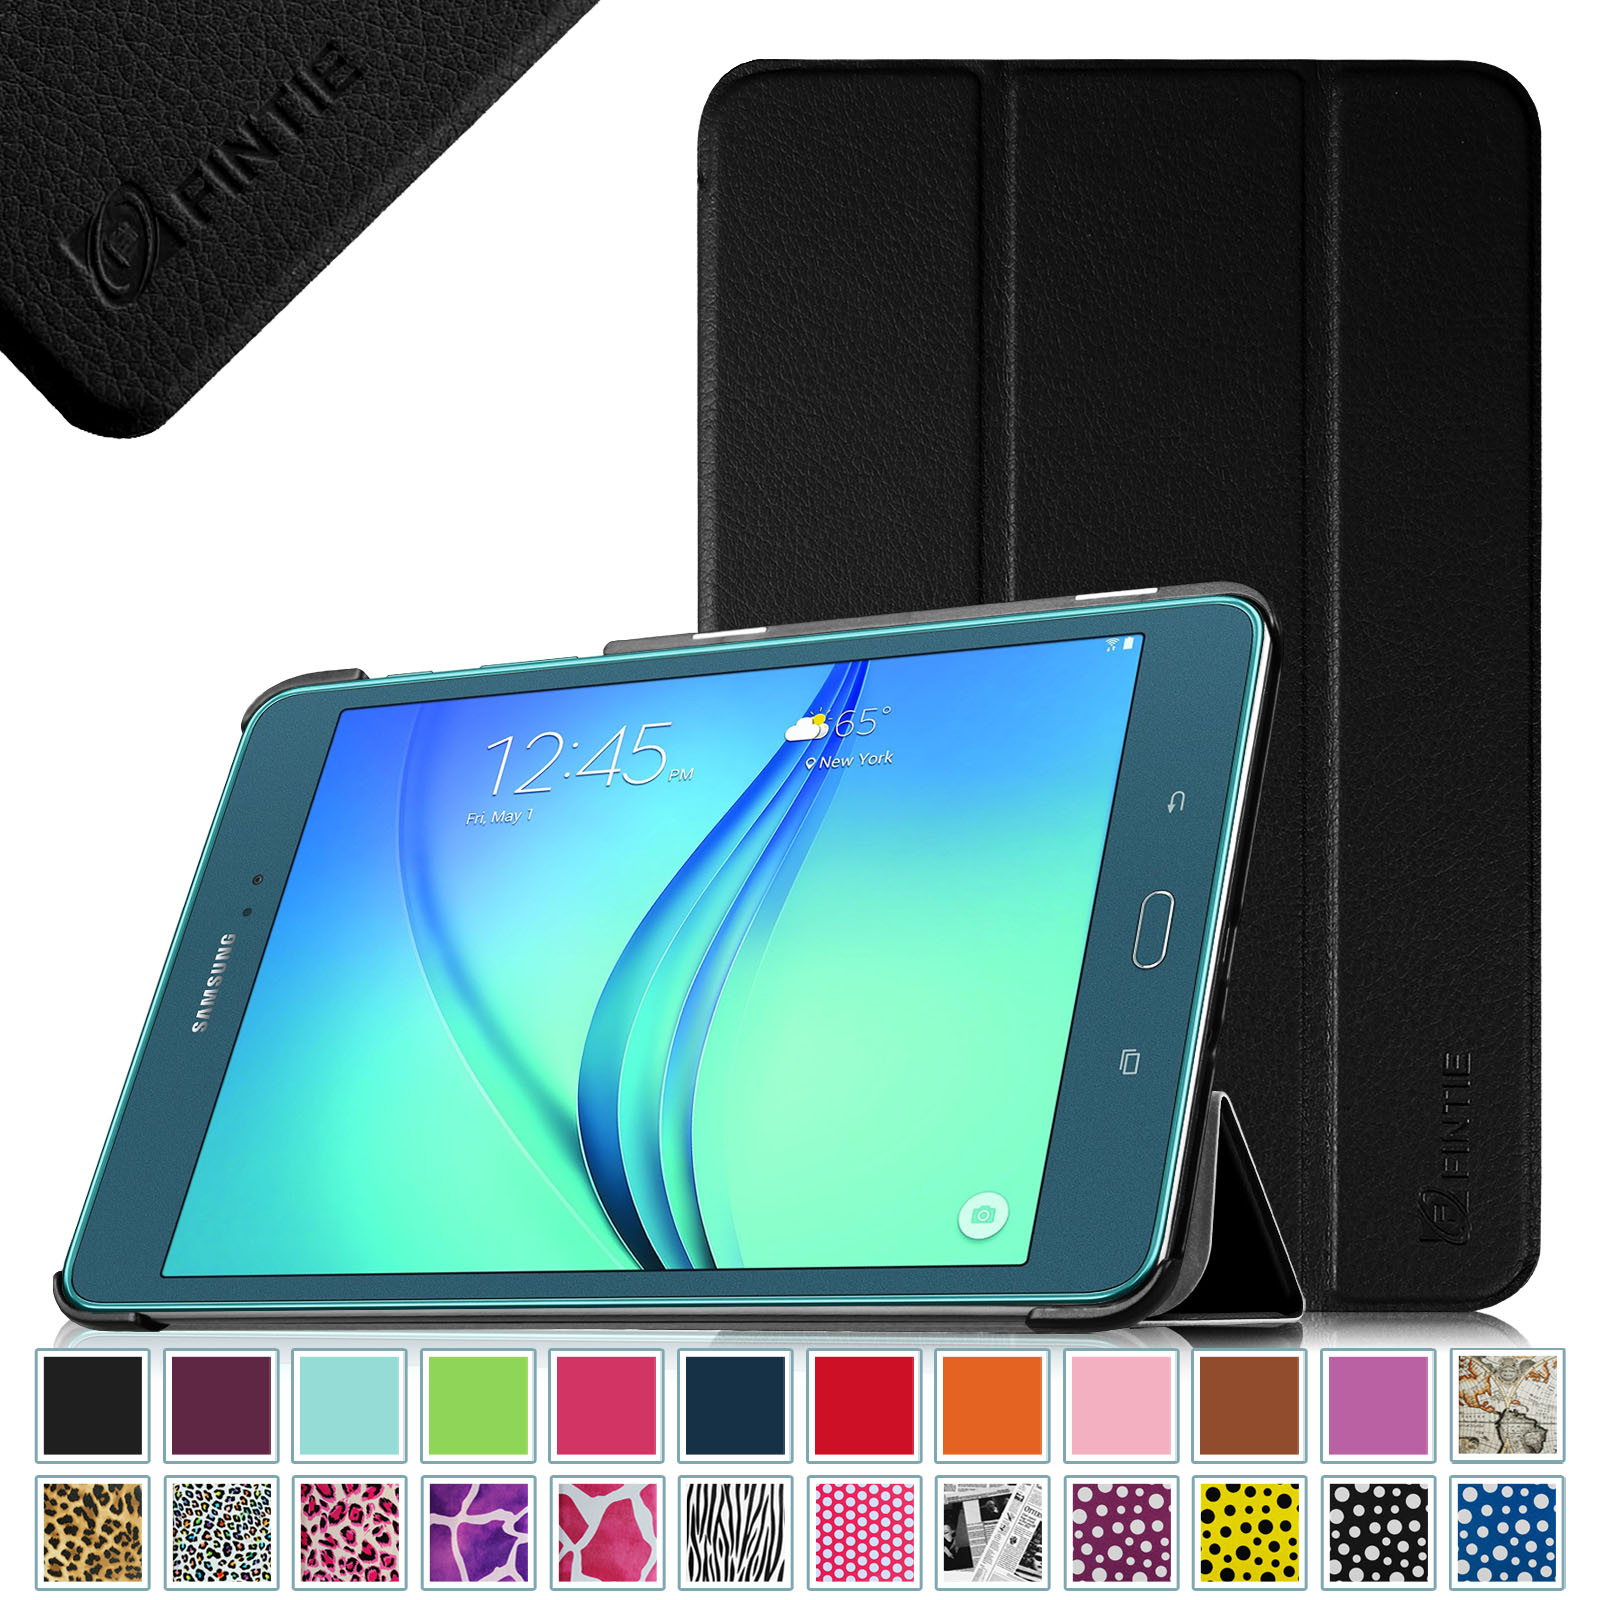 "Samsung Galaxy Tab A 8.0 Case - Fintie Ultra Slim Stand Cover with Auto Sleep/Wake for Tab A 8.0"" Tablet SM-T350, Black"